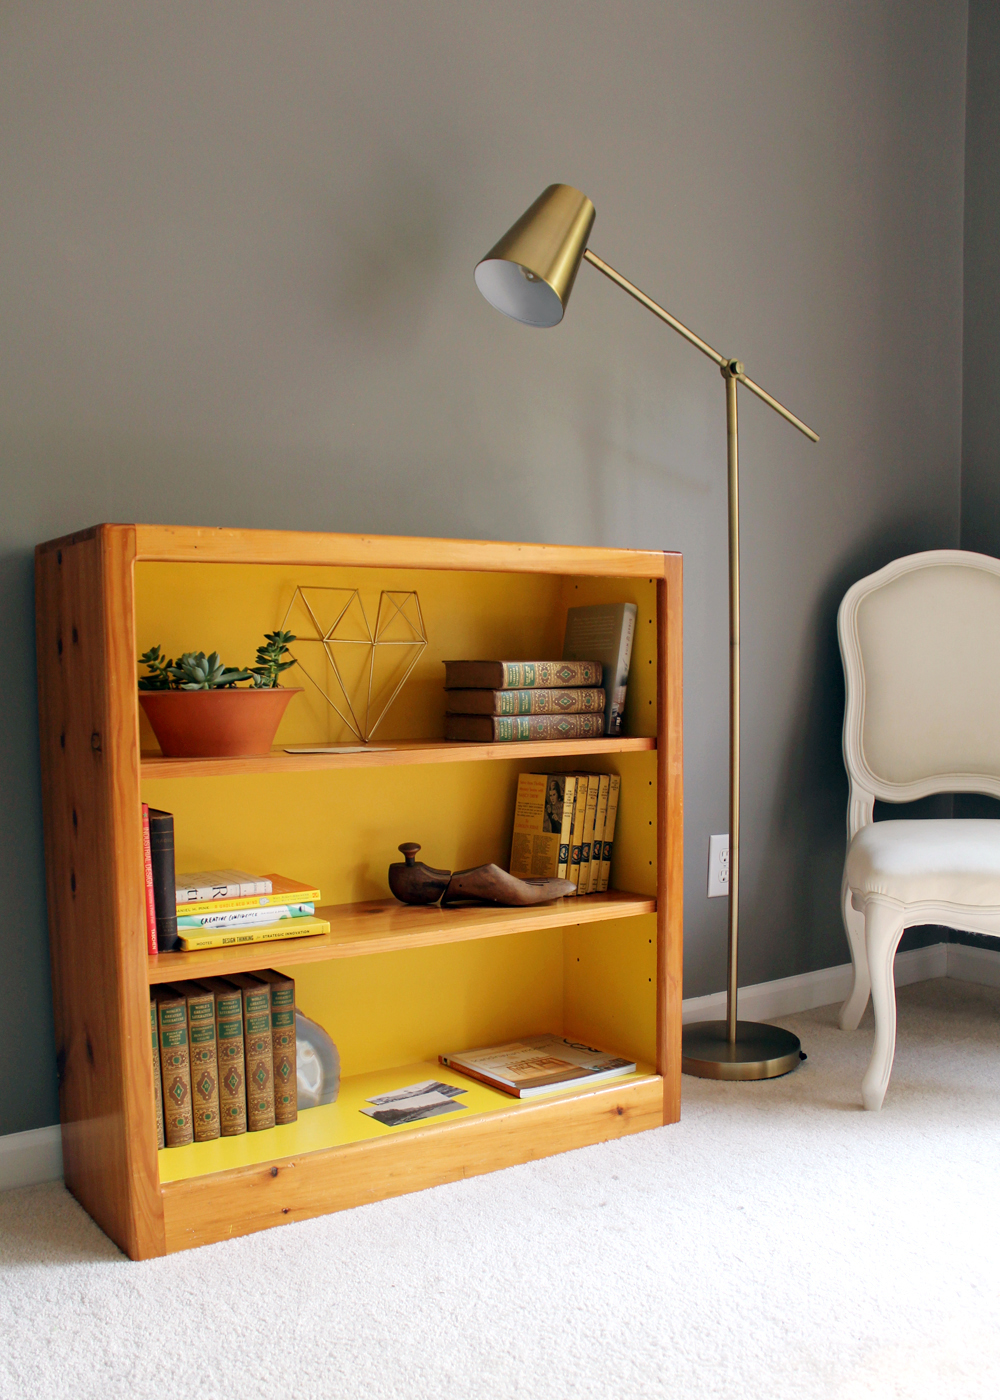 DIY thrift store bookcase painted Sherwin Williams Cheerful. (walls painted SW Dovetail Gray) | Tag&Tibby